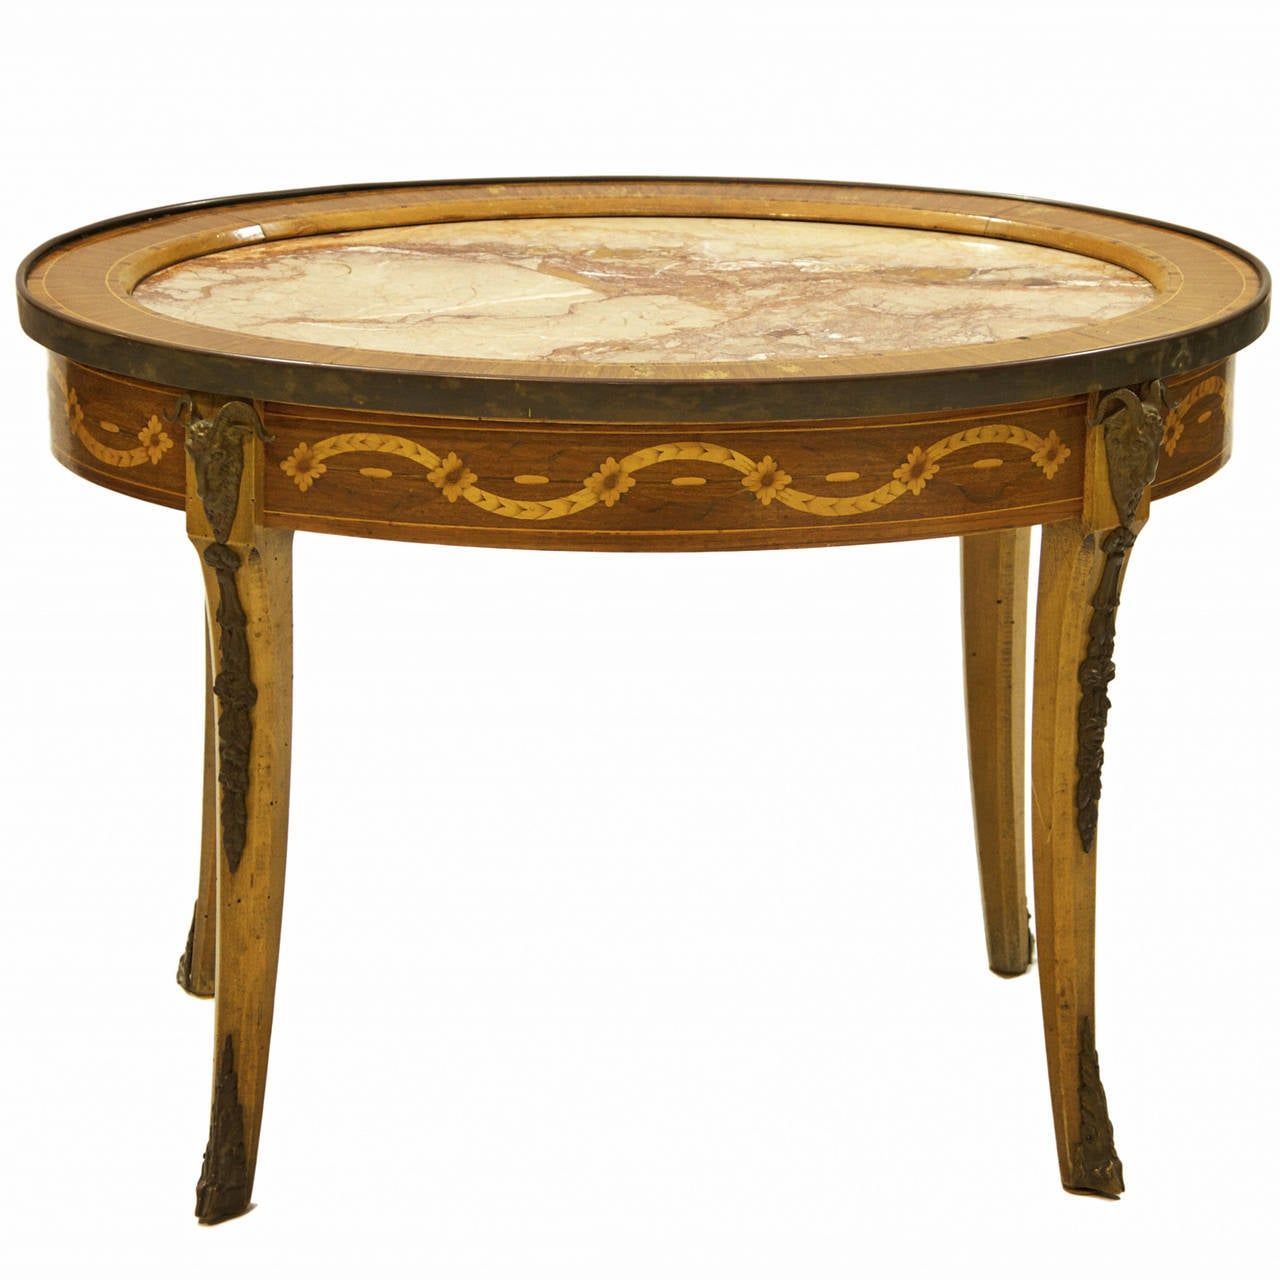 19th century italian oval table with marble insert at 1stdibs